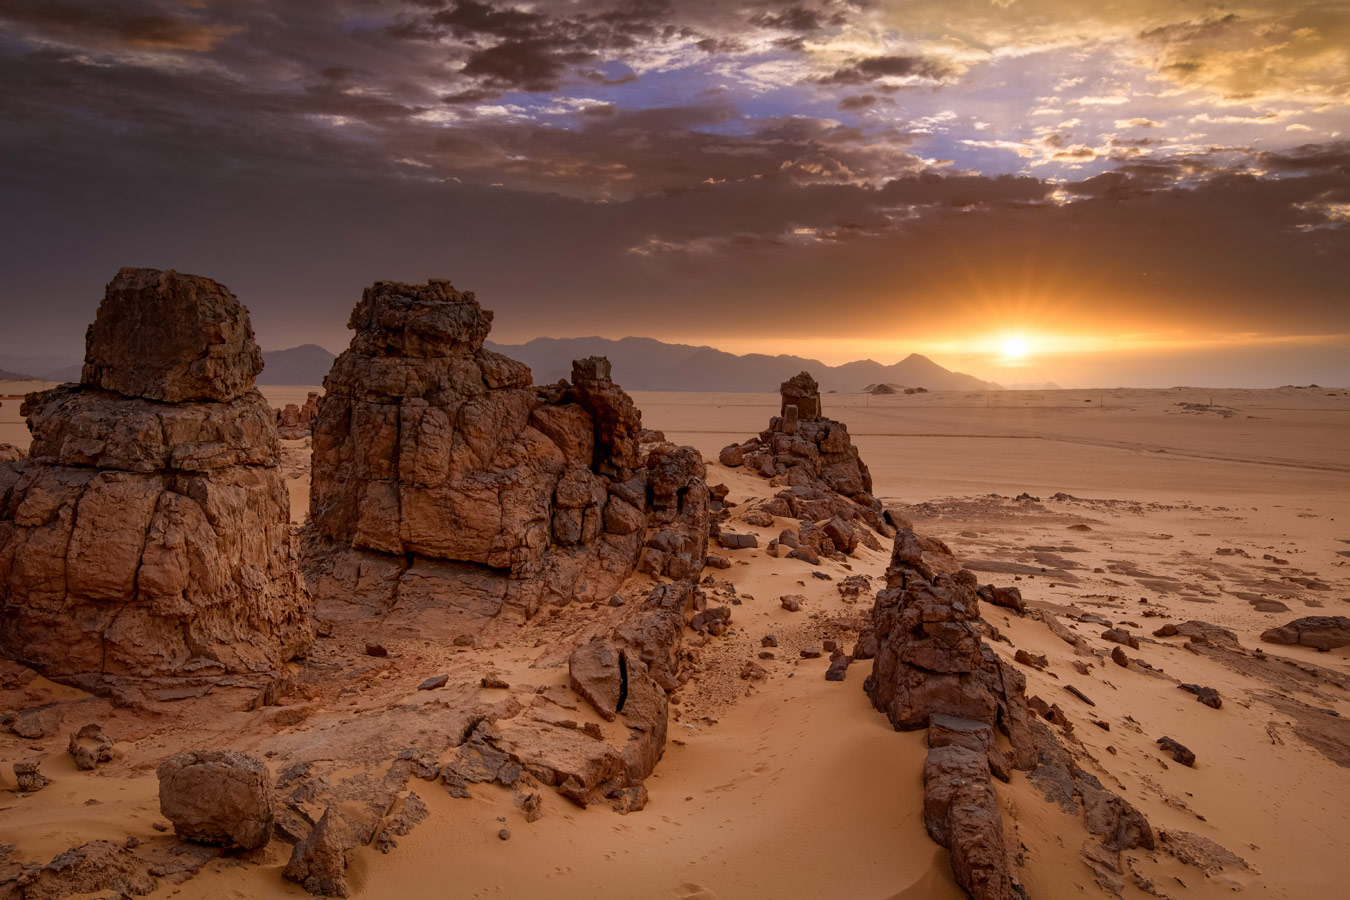 Tassili n'Ajjer National Park, Algeria, © Nabil Chettouh, 14 place, Wiki Loves Earth Photo Contest